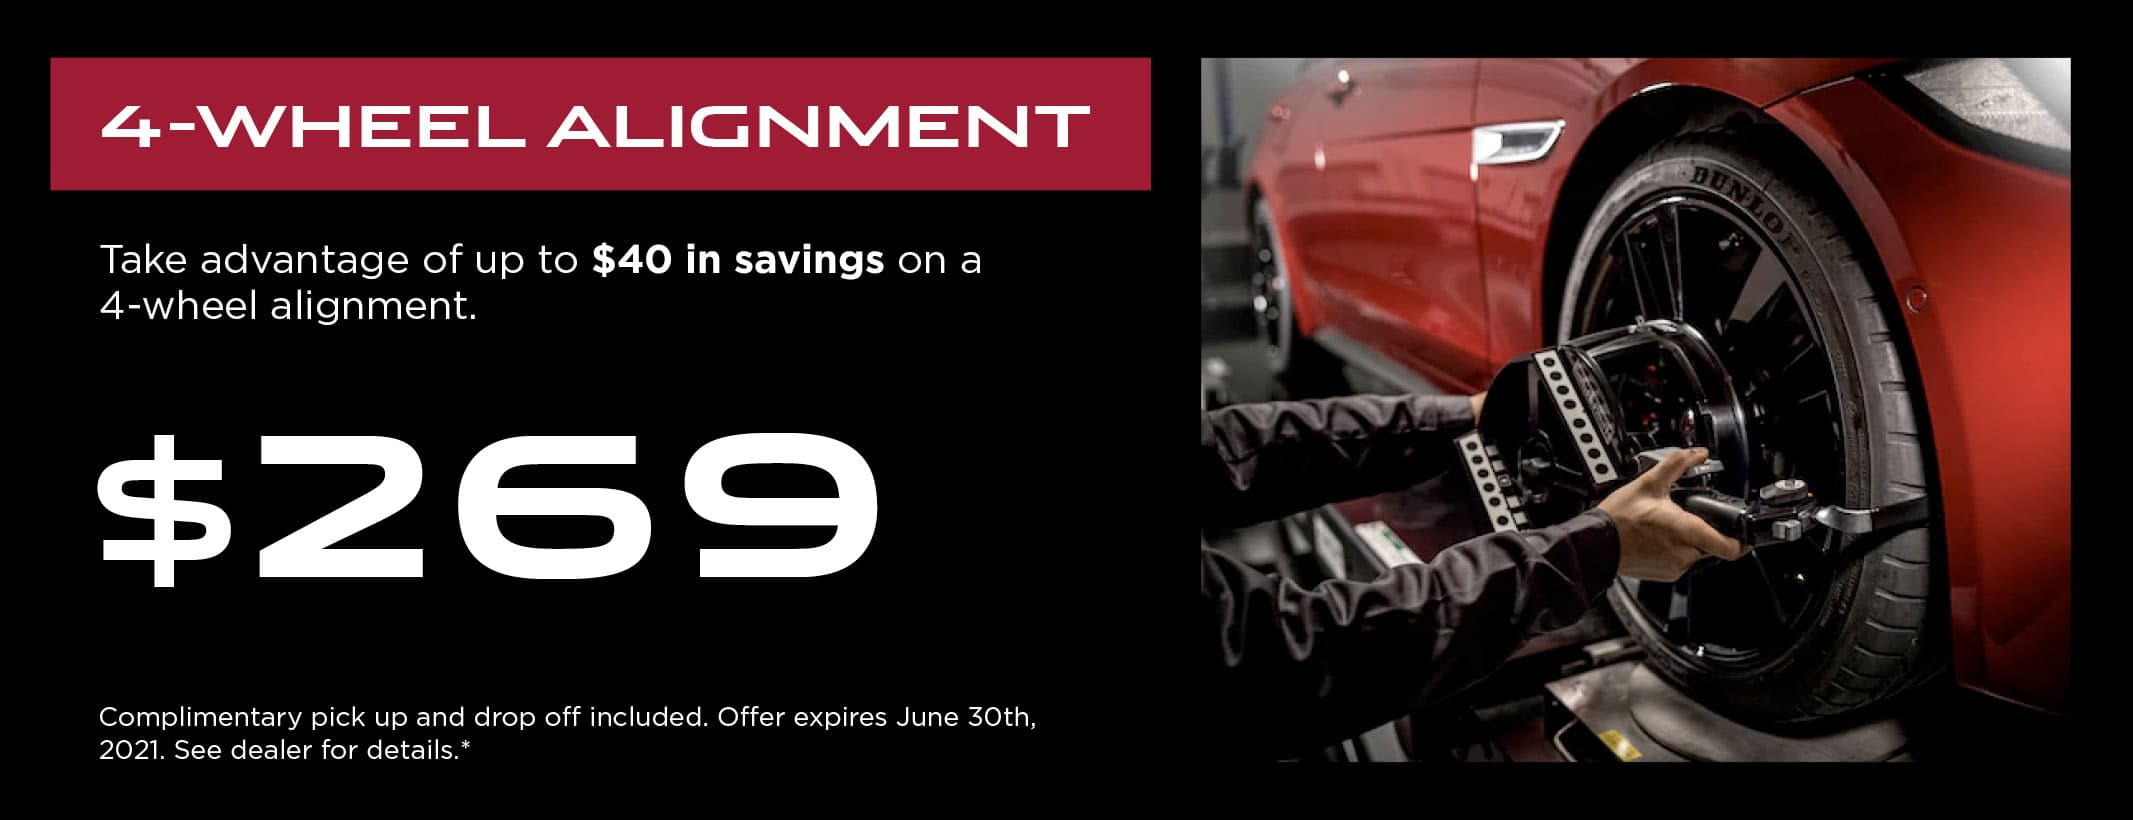 JLRL 4-Wheel Alignment Service Coupon Graphic